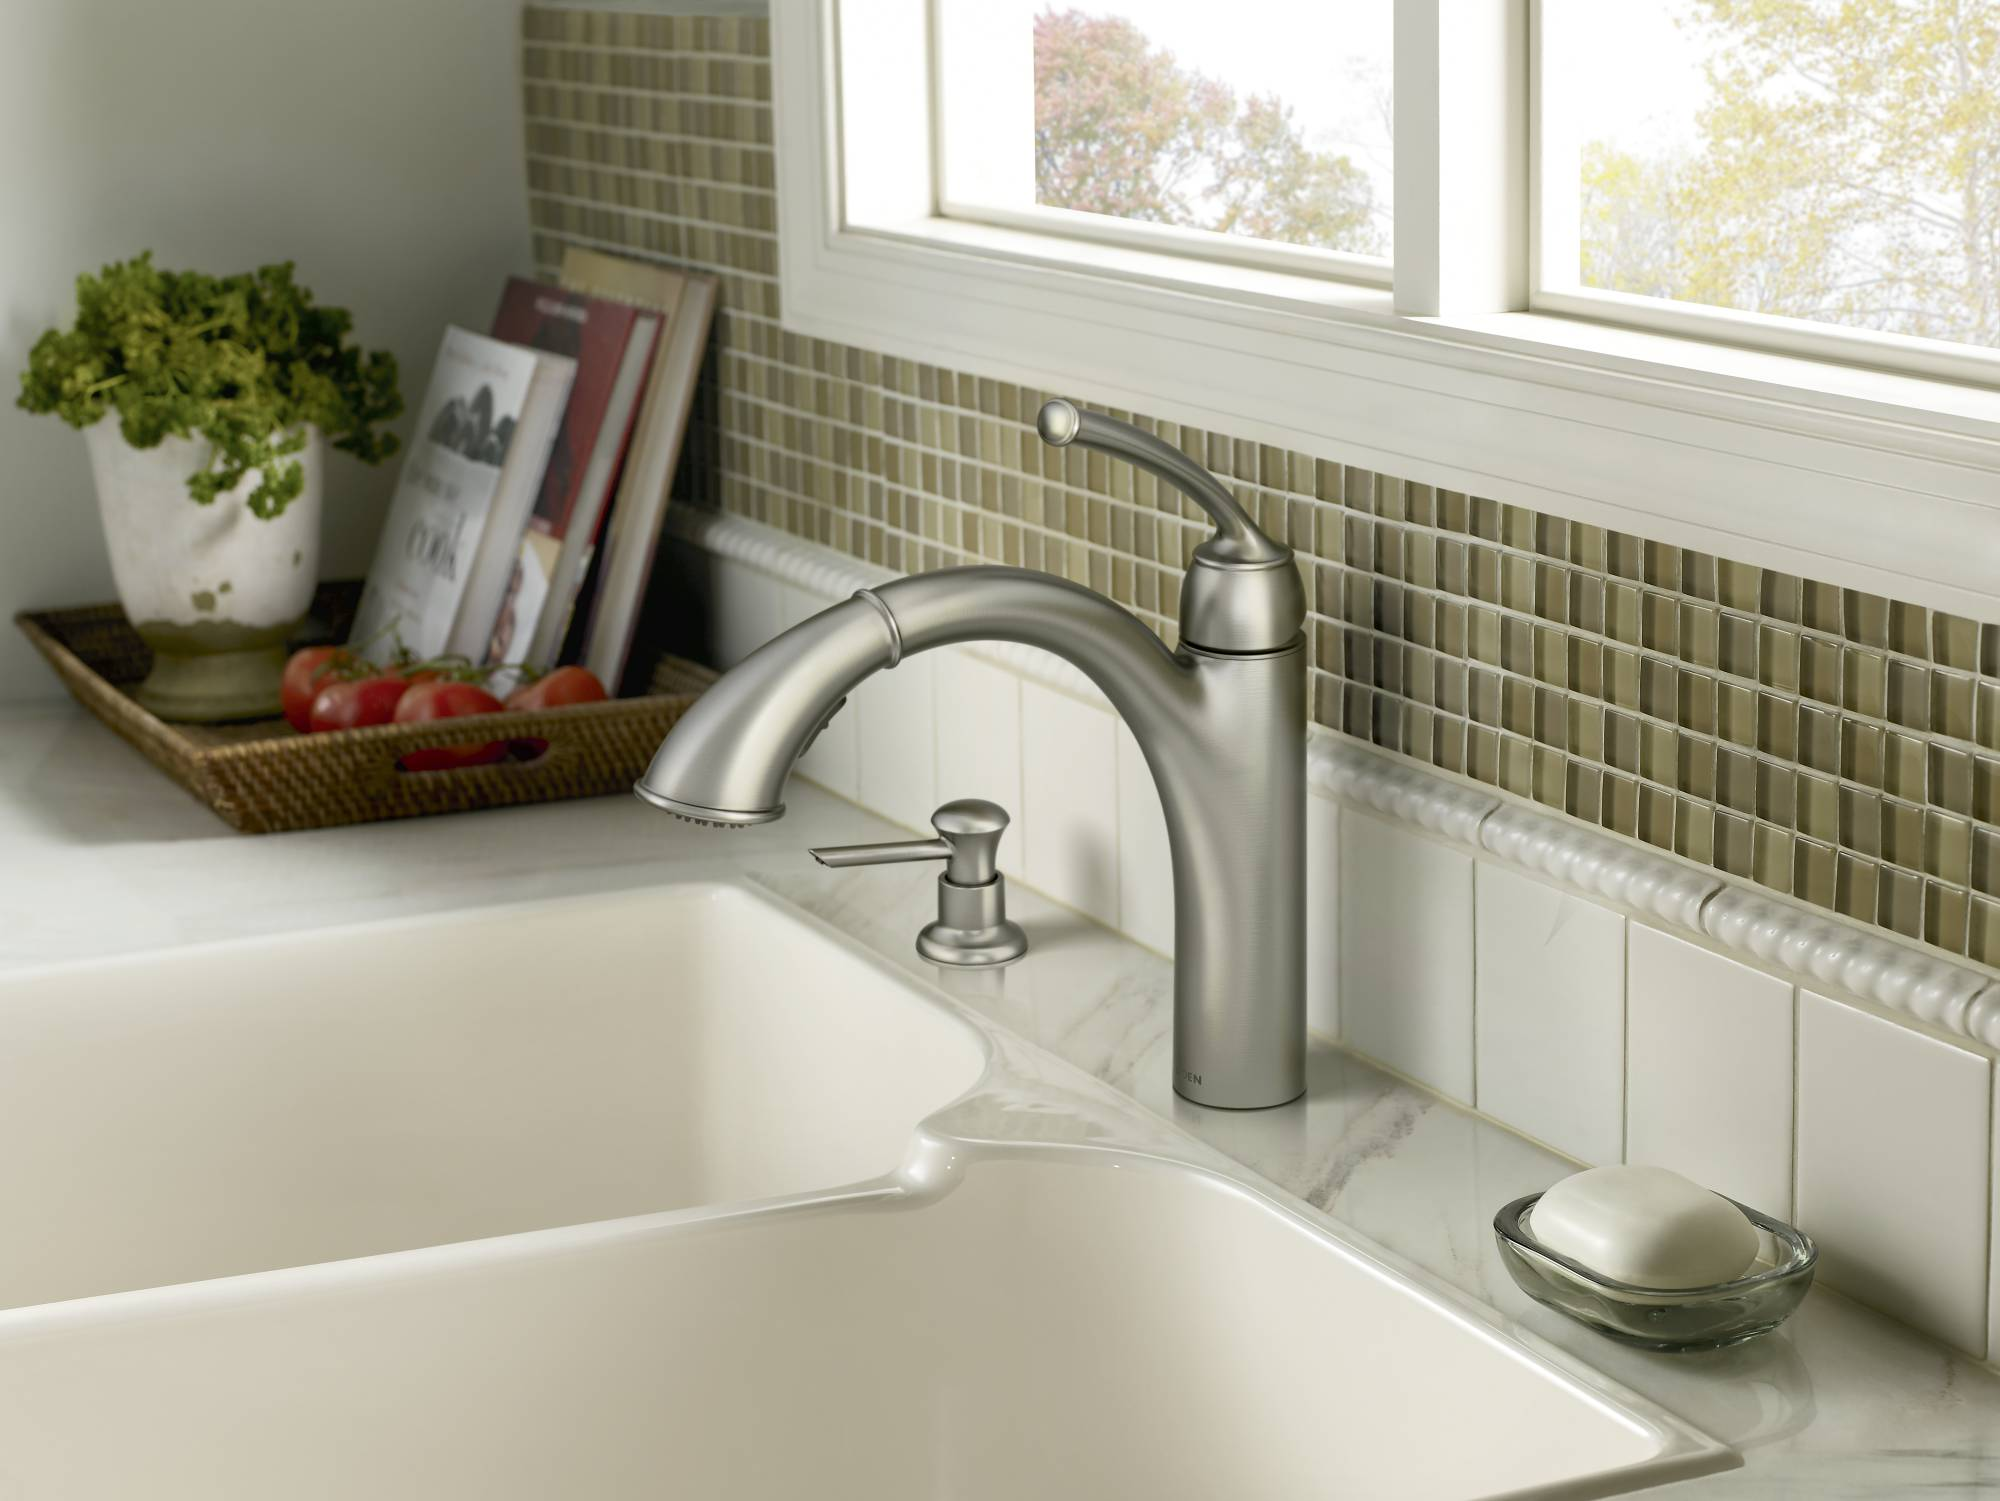 Homeowners Have A Variety of Options in the Kitchen and Bath with